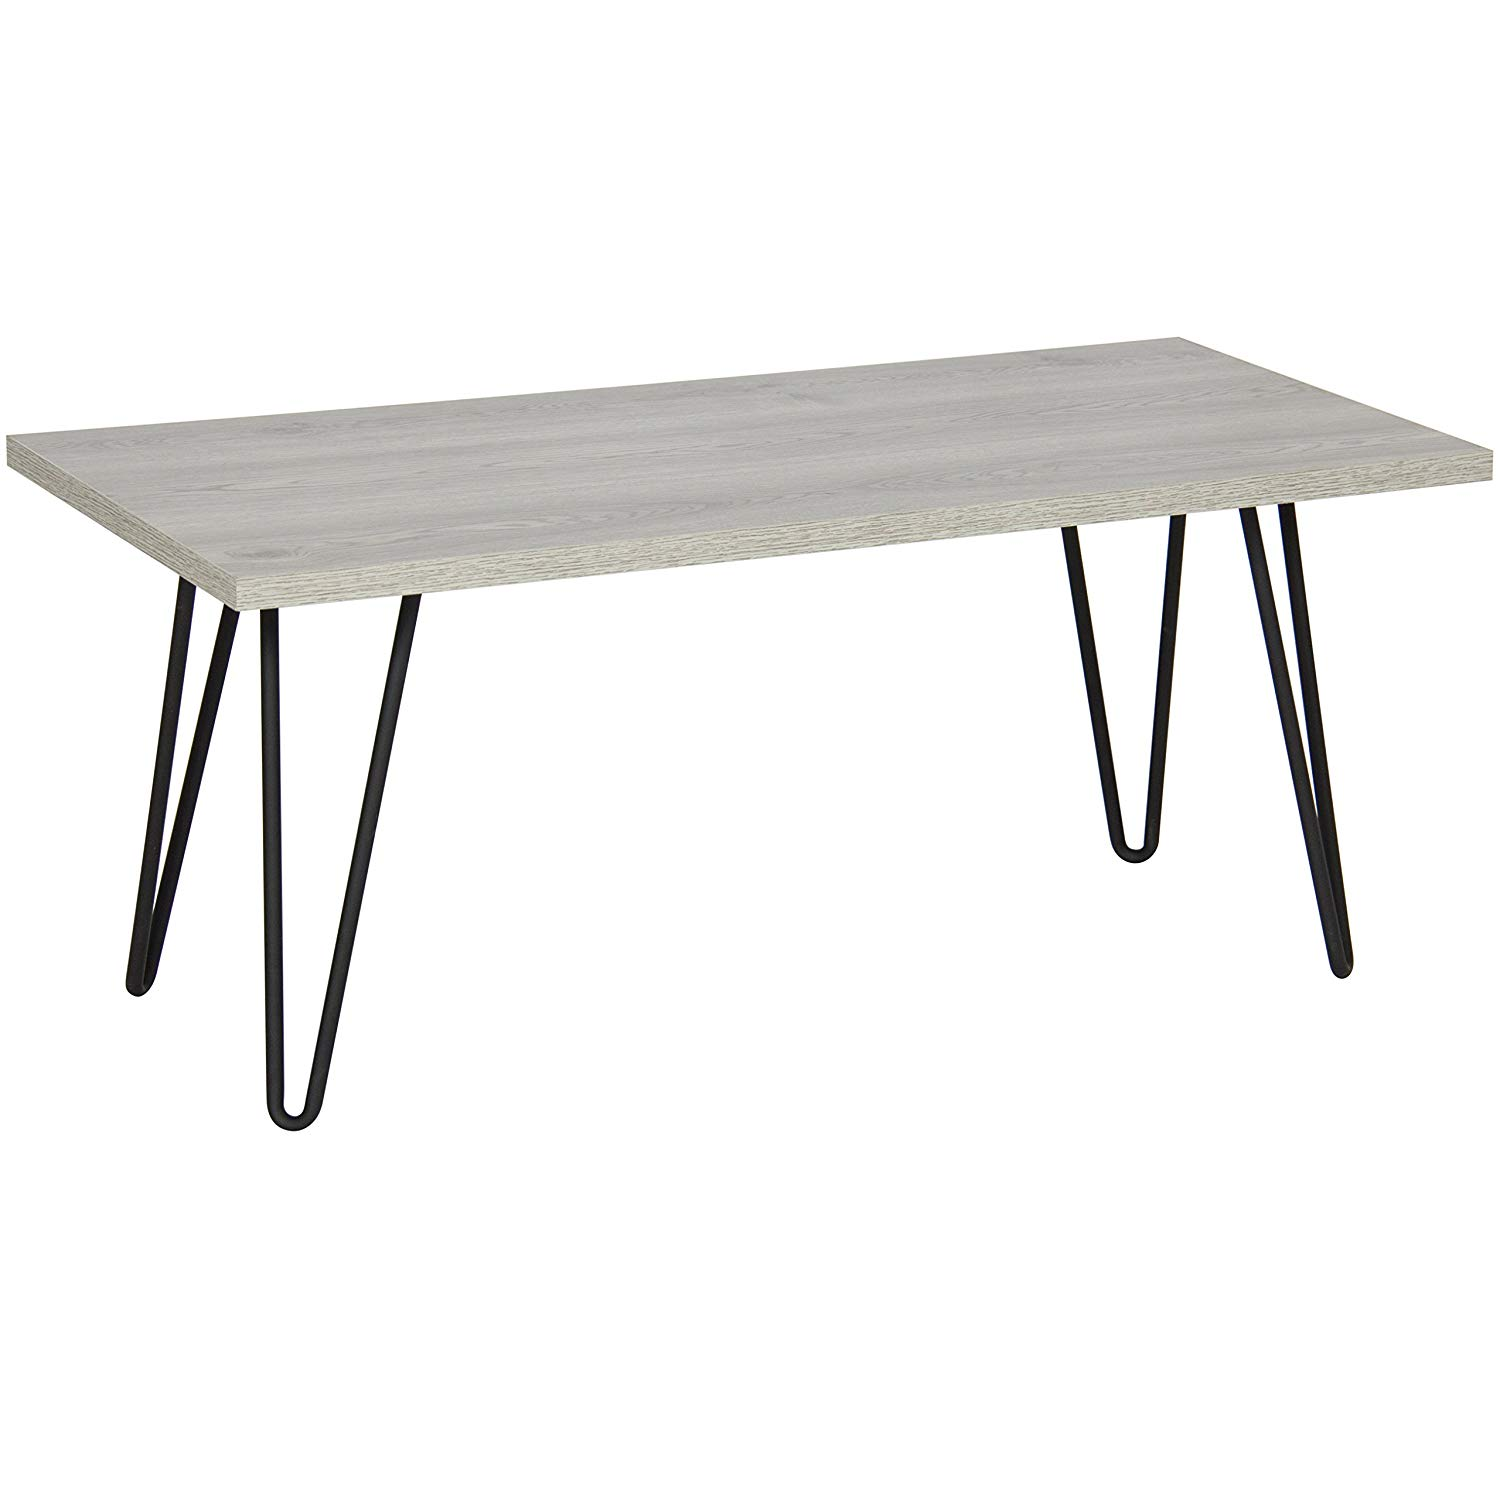 best choice products coffee table metal hairpin legs yuxkl room essentials accent home kitchen long hallway ashley furniture bar small black side with drawers round red tablecloth